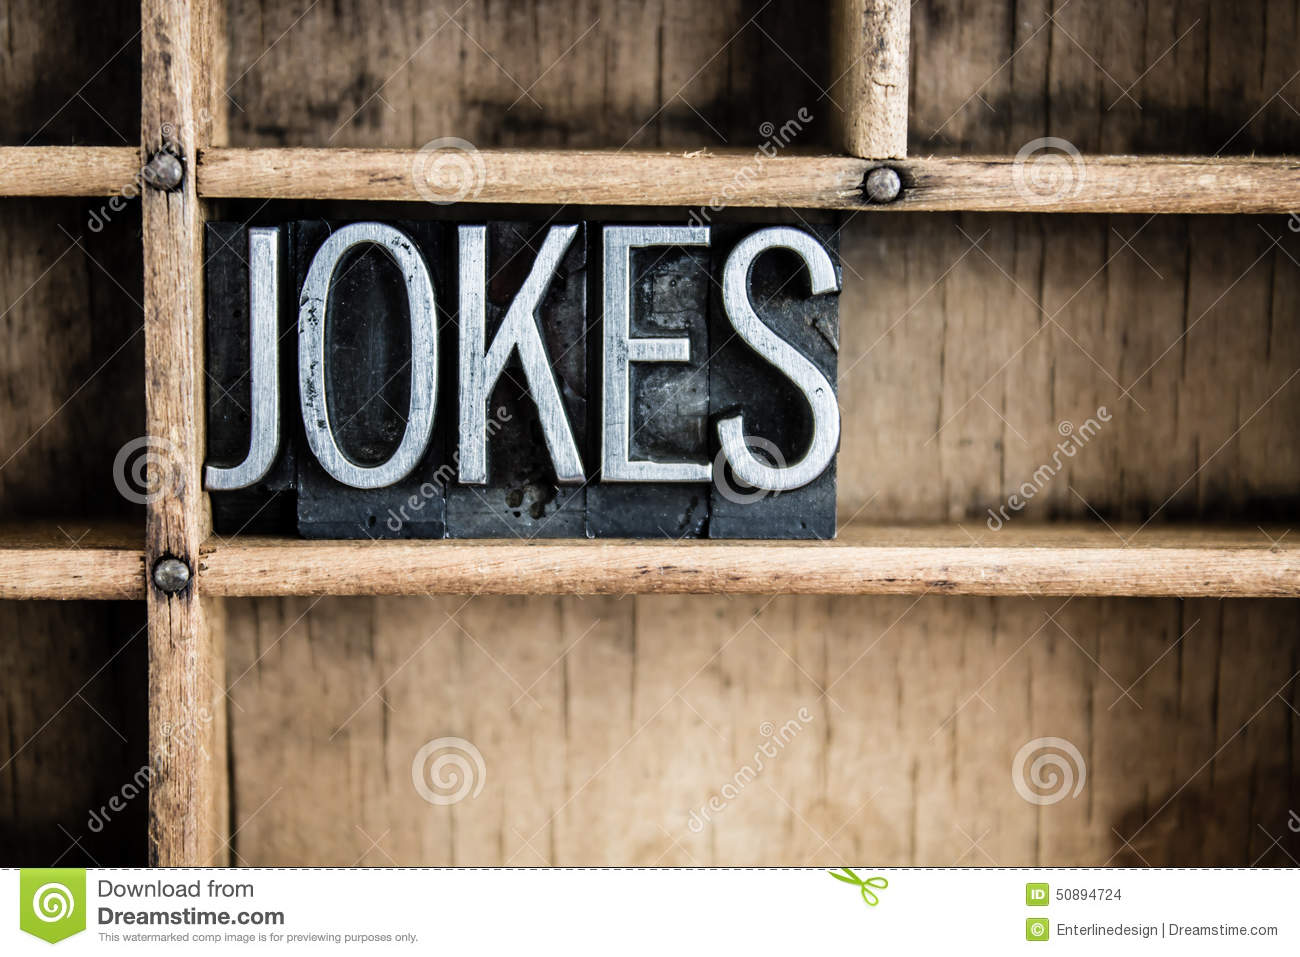 Jokes concept metal letterpress word in drawer stock photo for Concept metal